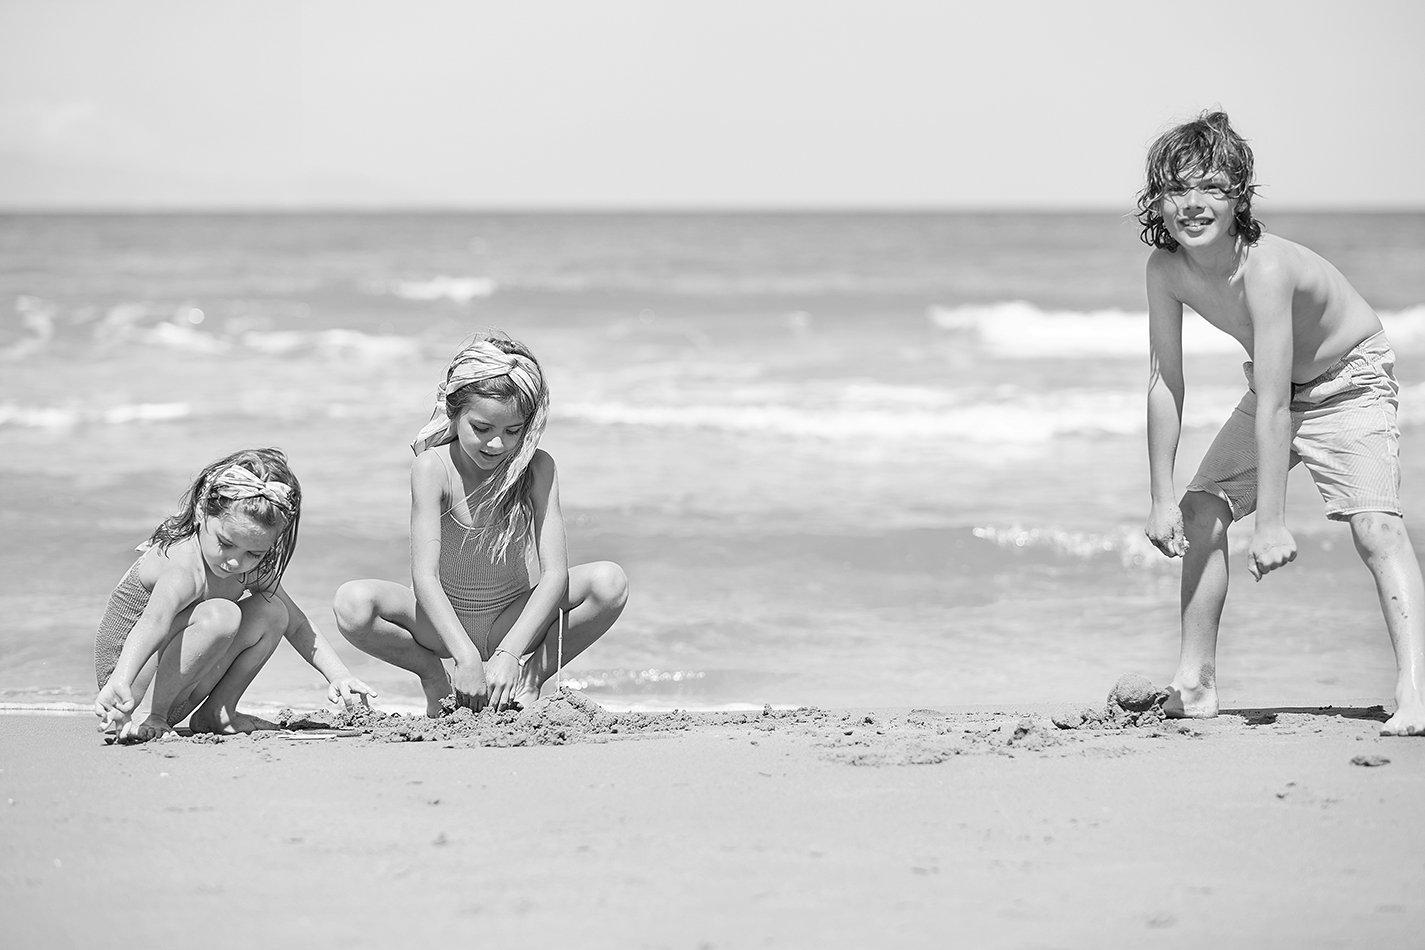 06-Family-Vacations-on-an-Excellent-Long-Sandy-Beach_72dpi